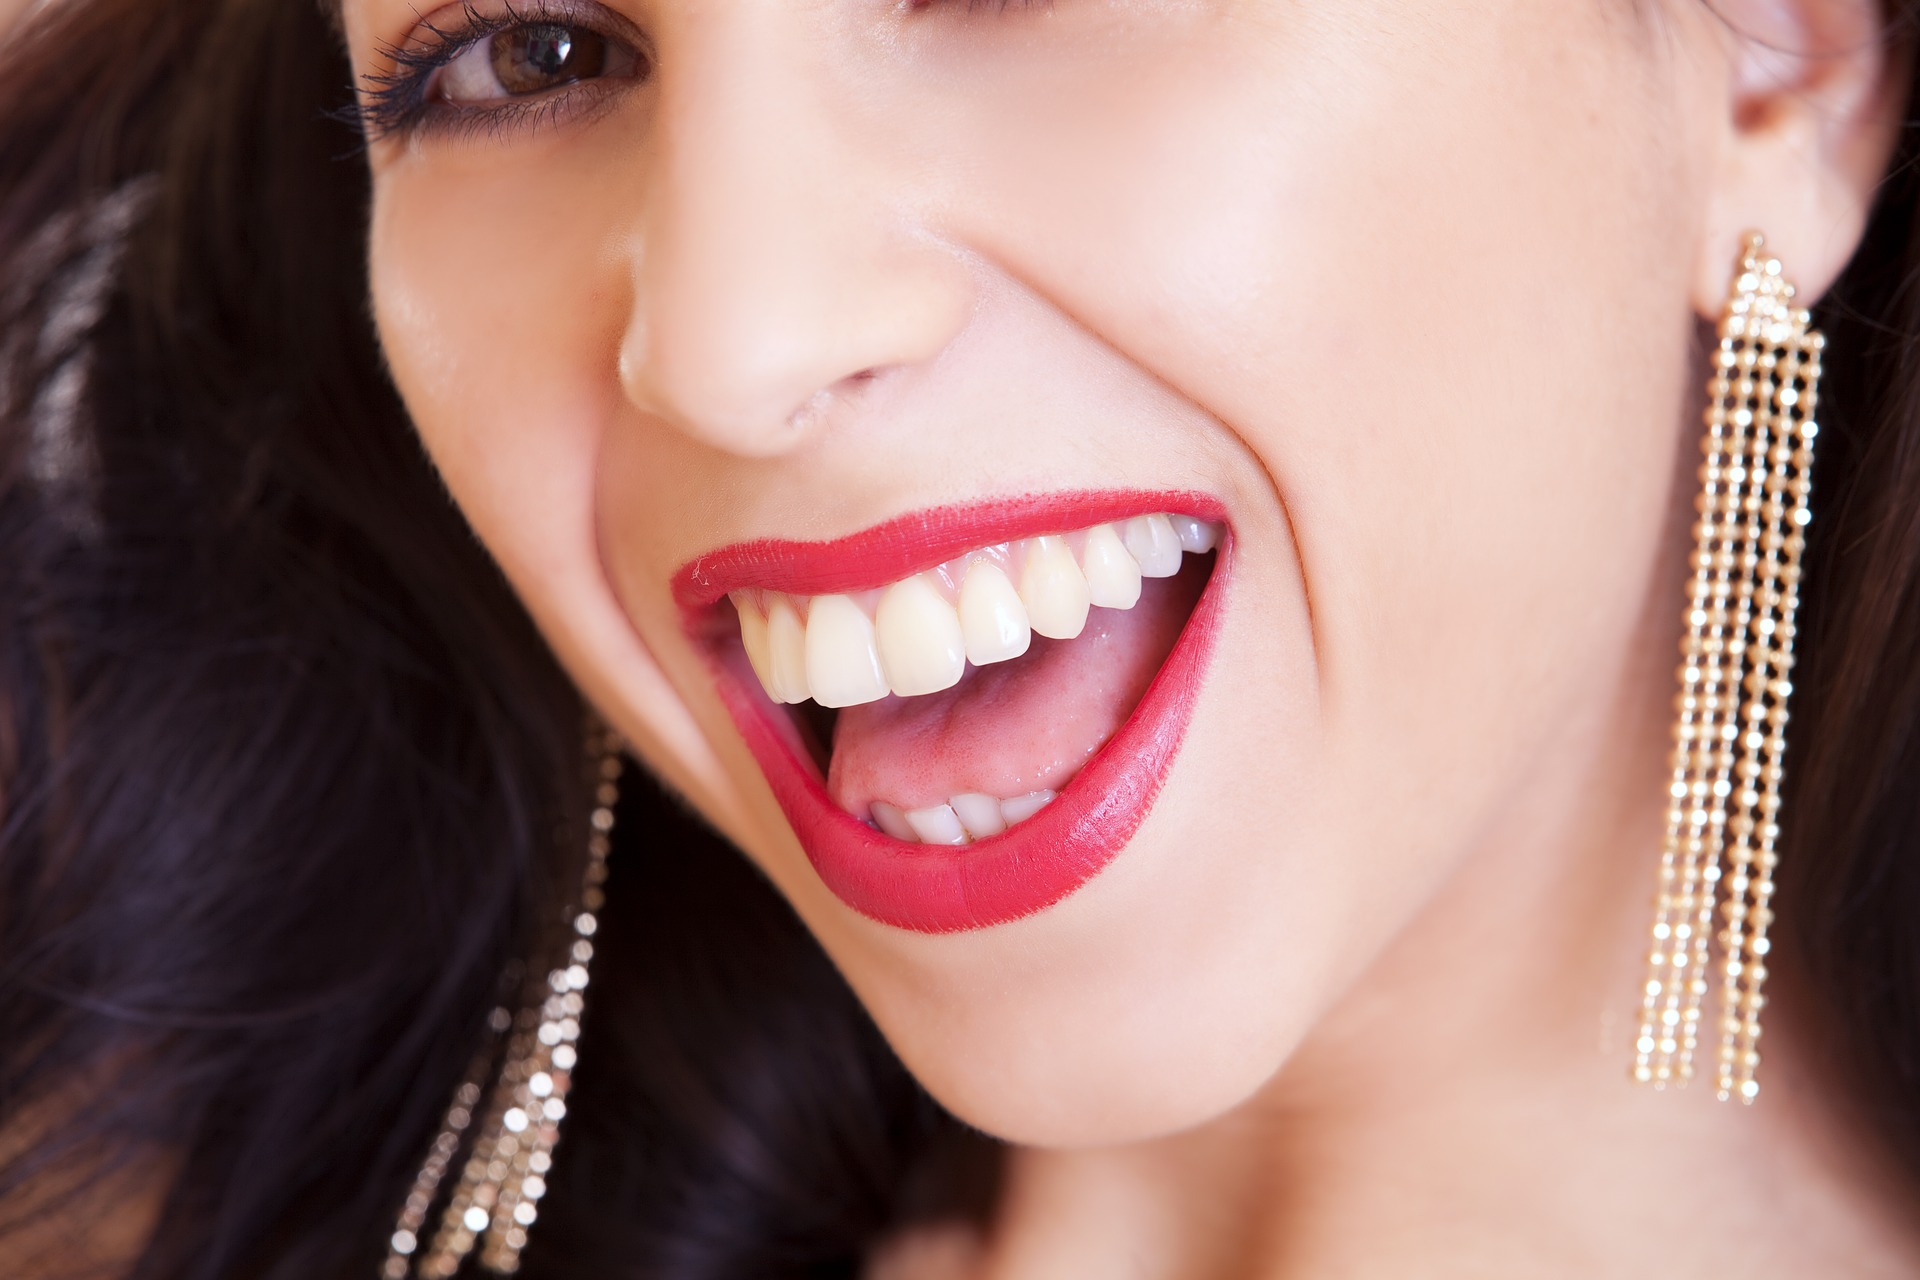 30% discount on professional teeth cleaning